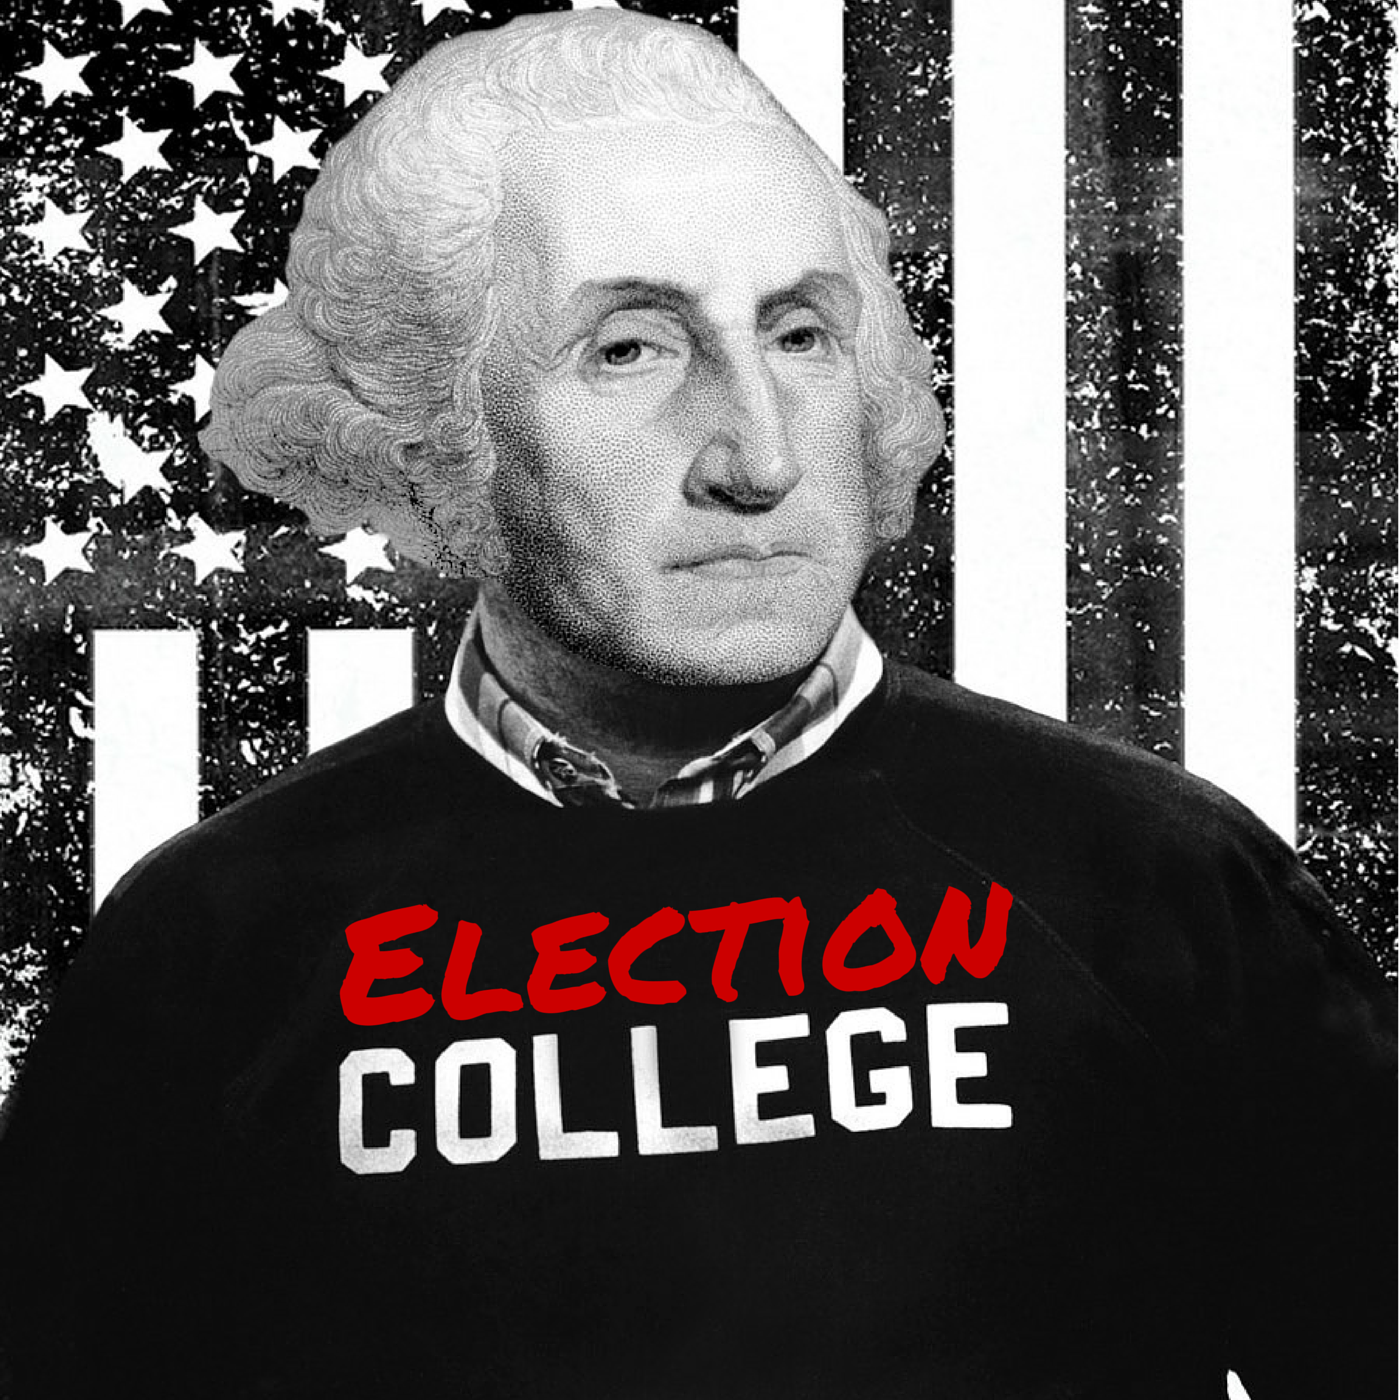 William McKinley - Part 1 | Episode #260 | Election College: United States Presidential Election History